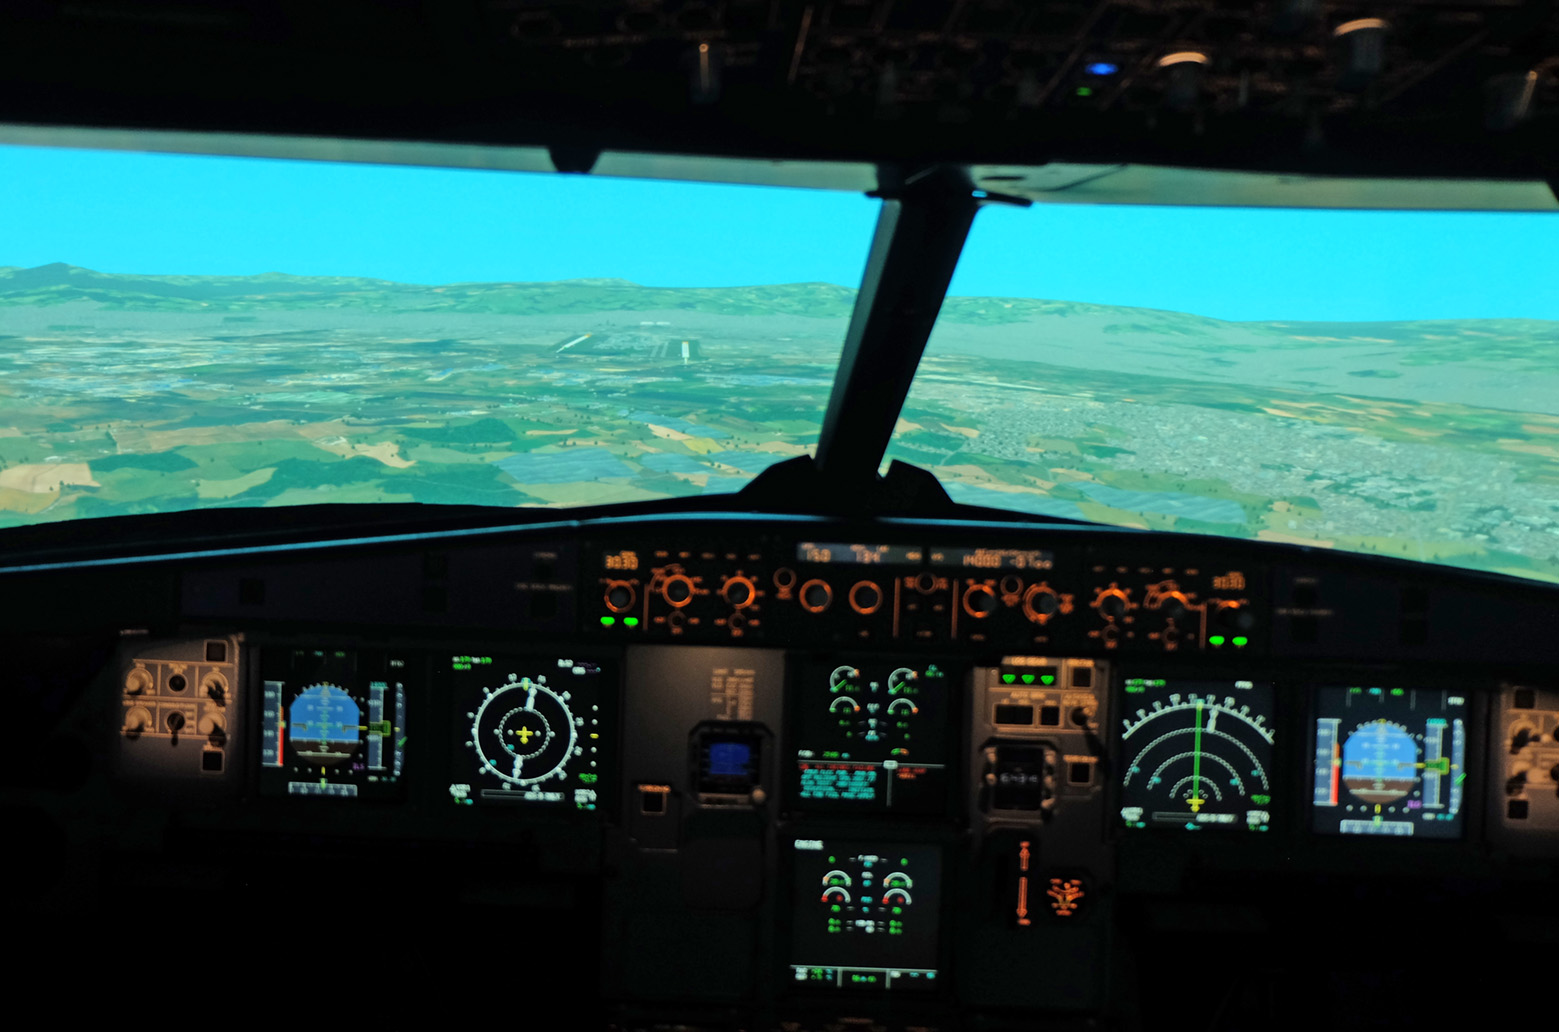 Arrival of GTA flight simulator opens up Colombian skies for future